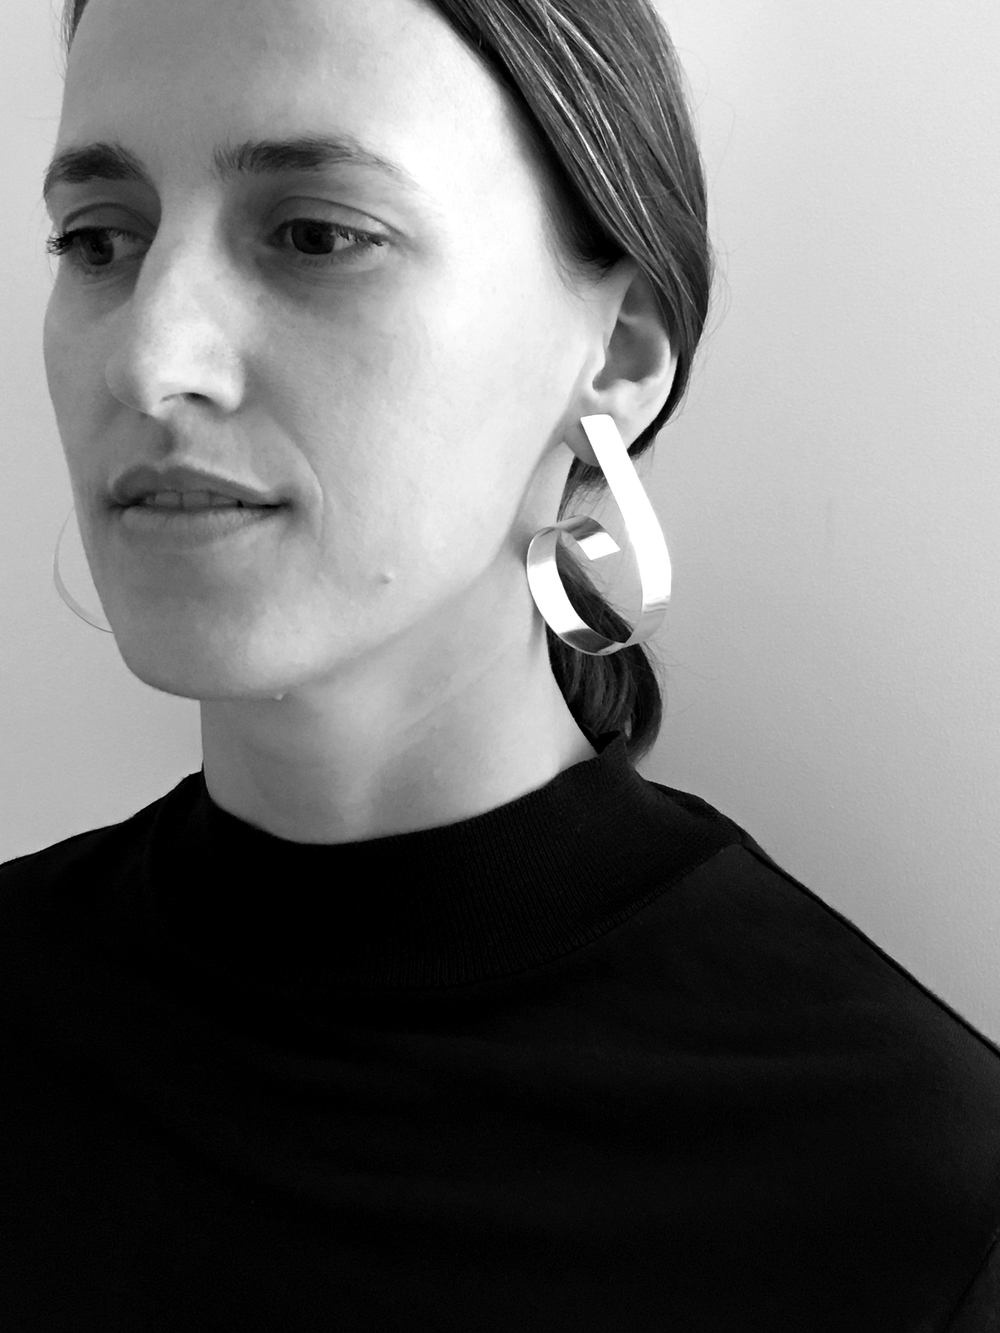 LOOPING earring by Sara Robertsson on Fatima 01.jpg